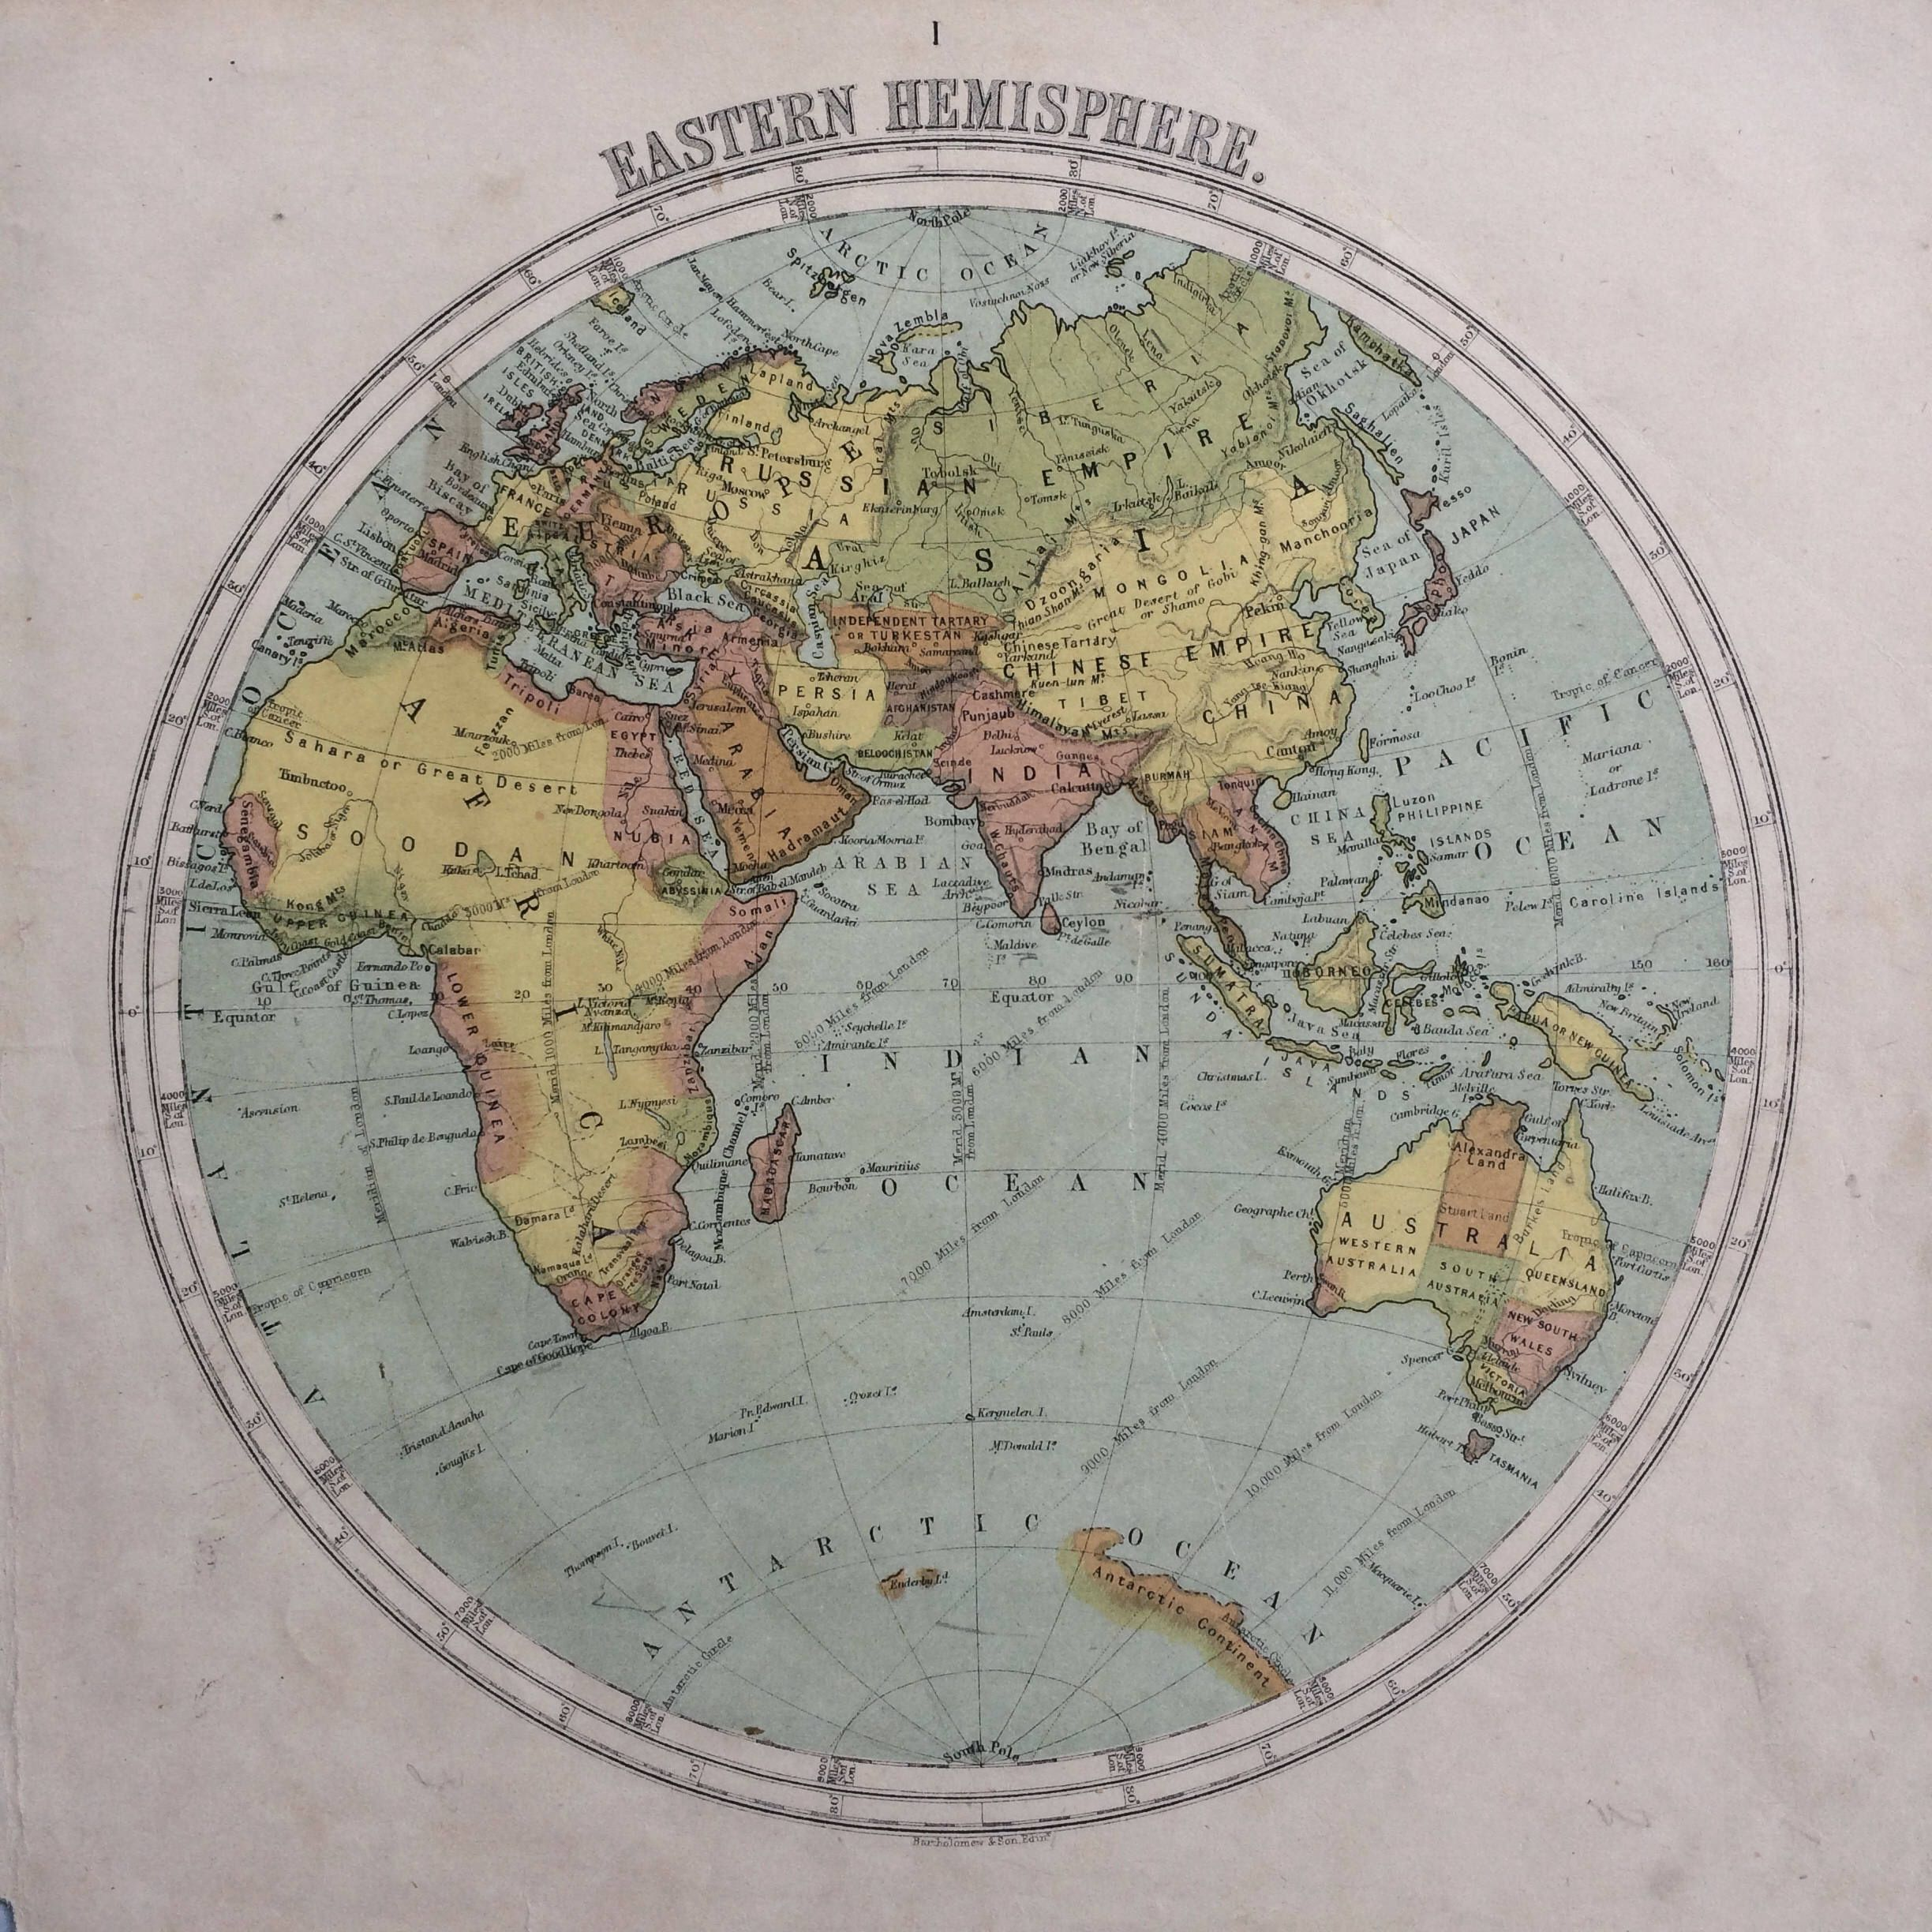 1865 eastern hemisphere original antique hand coloured engraved 1865 eastern hemisphere original antique hand coloured engraved square map nelsons atlas wall decor world map home decor by ninskaprints on etsy gumiabroncs Images